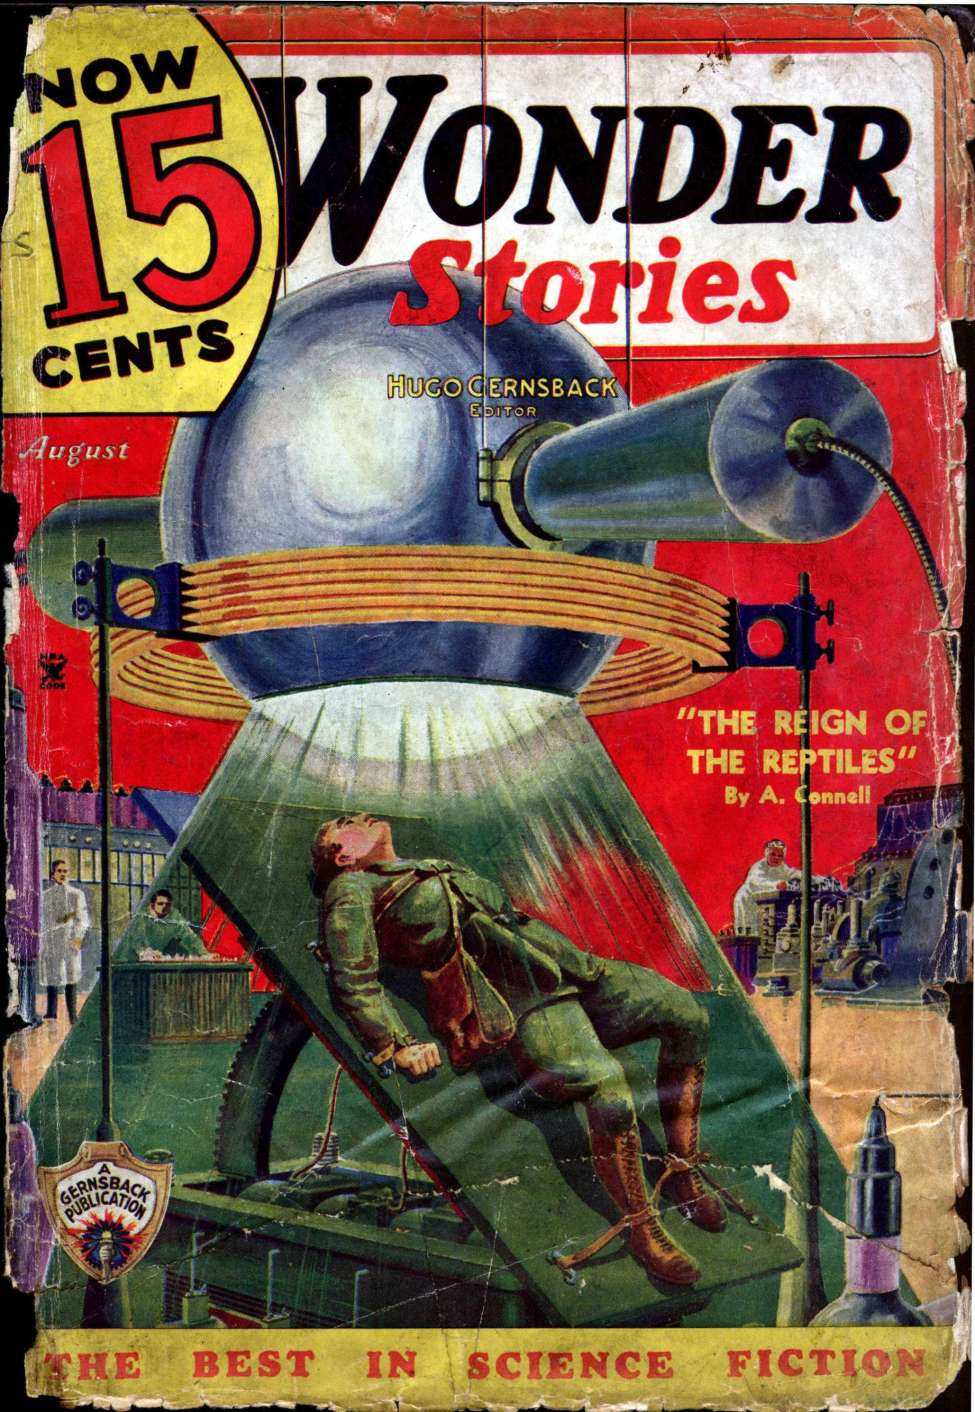 Comic Book Cover For Wonder Stories v7 03 - The Reign of the Reptiles - A. Connell